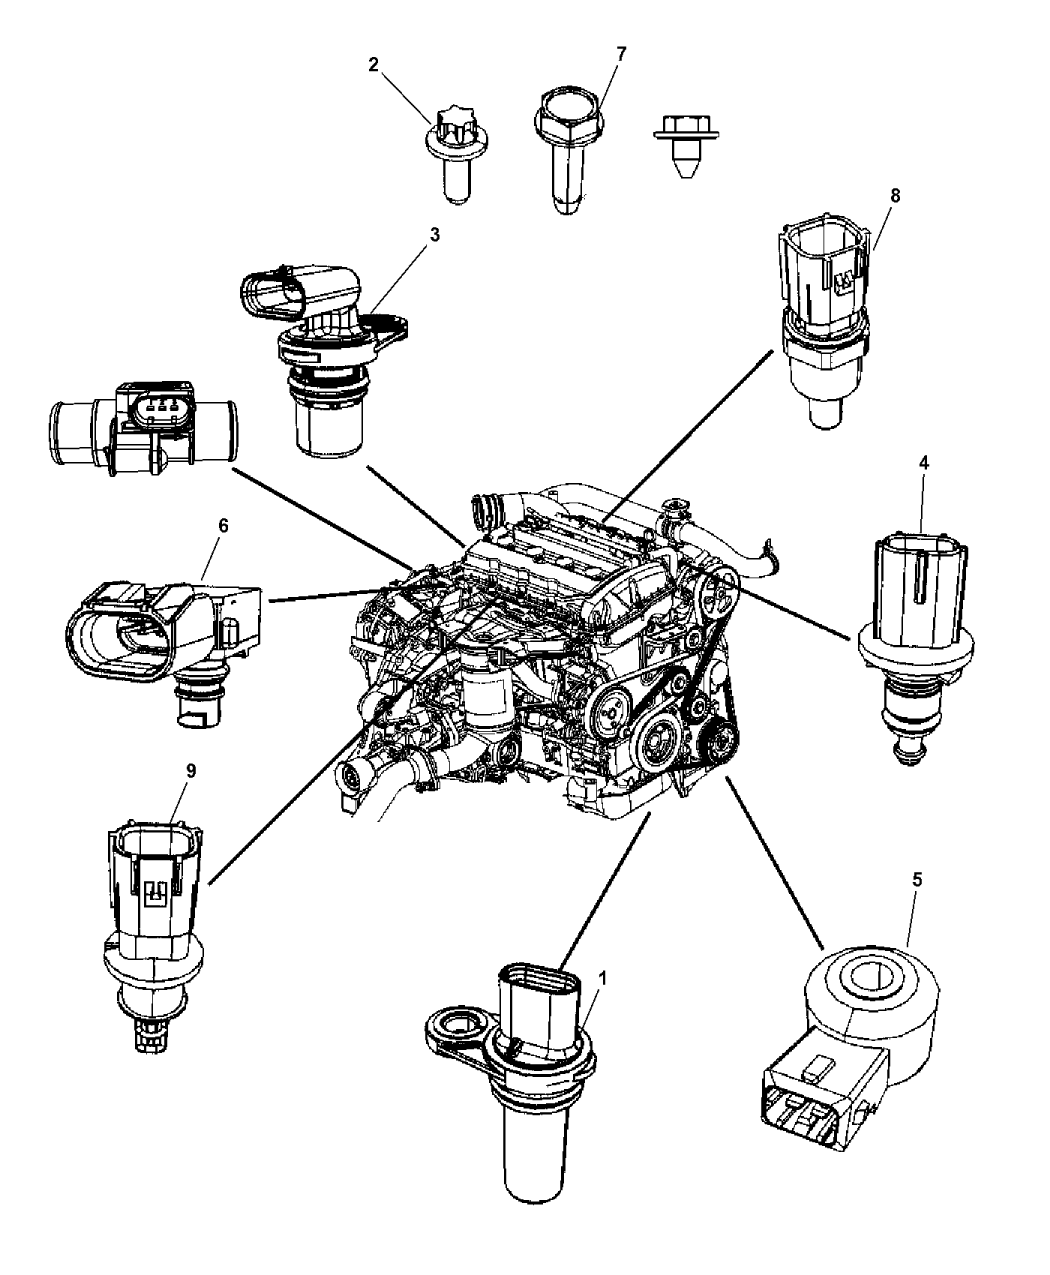 5033307ad genuine mopar sensor crankshaft position rh moparpartsgiant com 2014 jeep compass engine diagram 2007 Jeep Compass Fuse Box Diagram